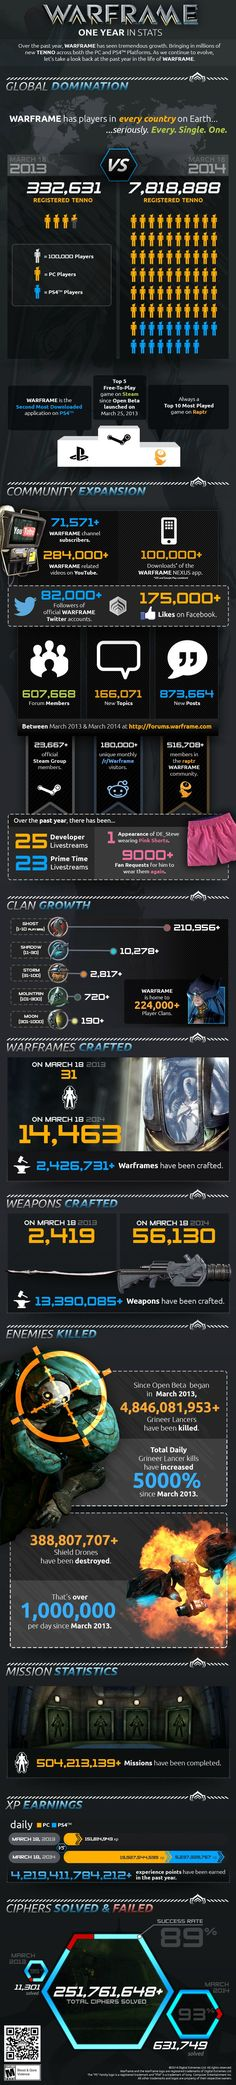 Warframe in Numbers | Warframe